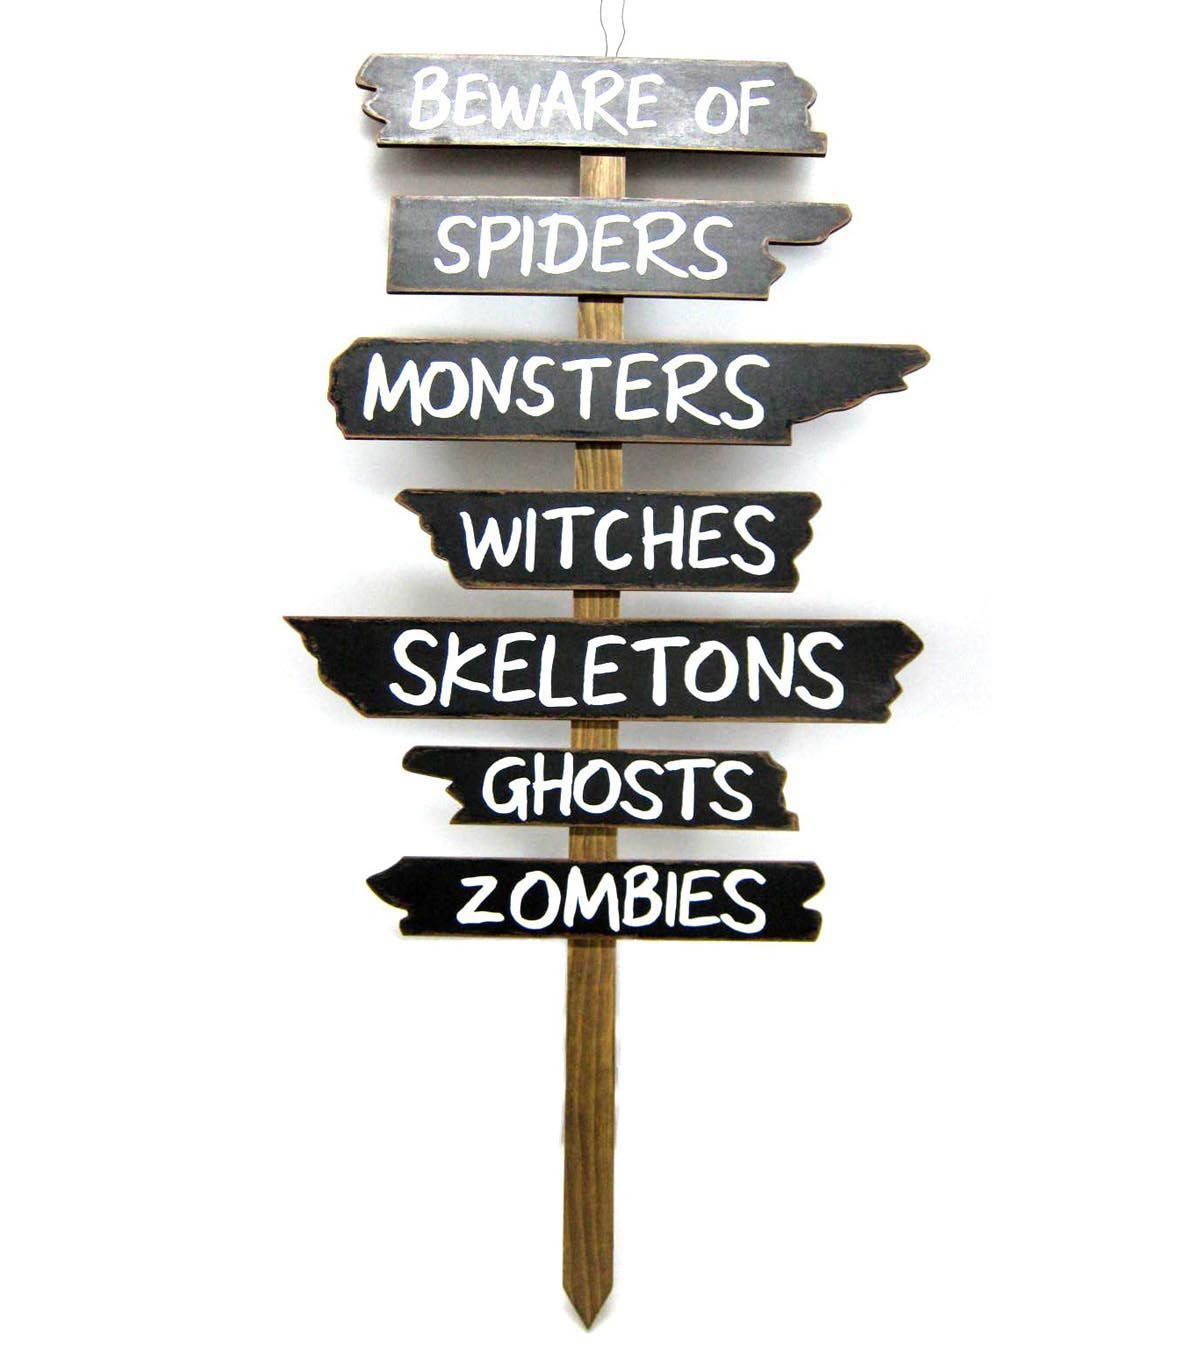 Use The Makers Halloween Wood Yard Stake Beware Sign To Add A Fun Halloween Touch To Your Yard Lawn Gard Halloween Yard Signs Halloween Lawn Beware Halloween